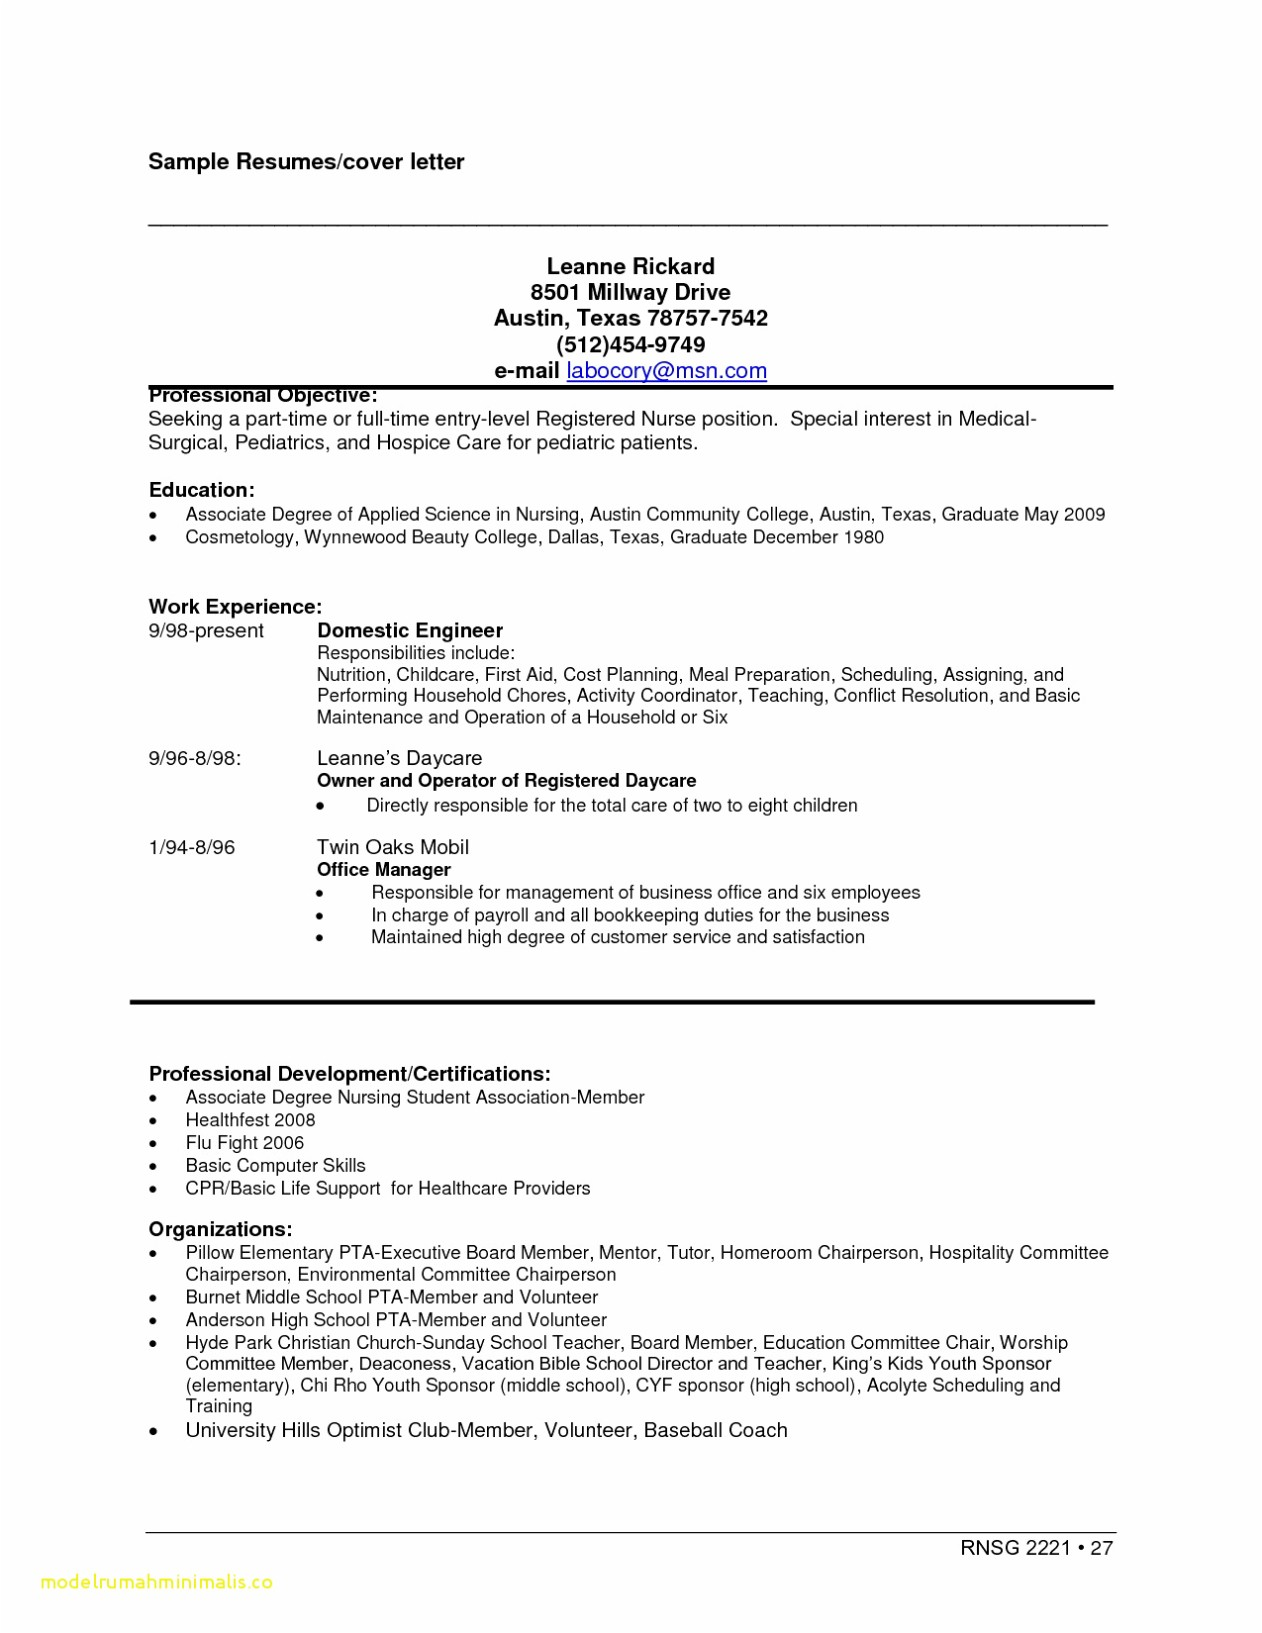 esthetician student resume examples best new graduate cosmetology samples top result Resume New Graduate Esthetician Resume